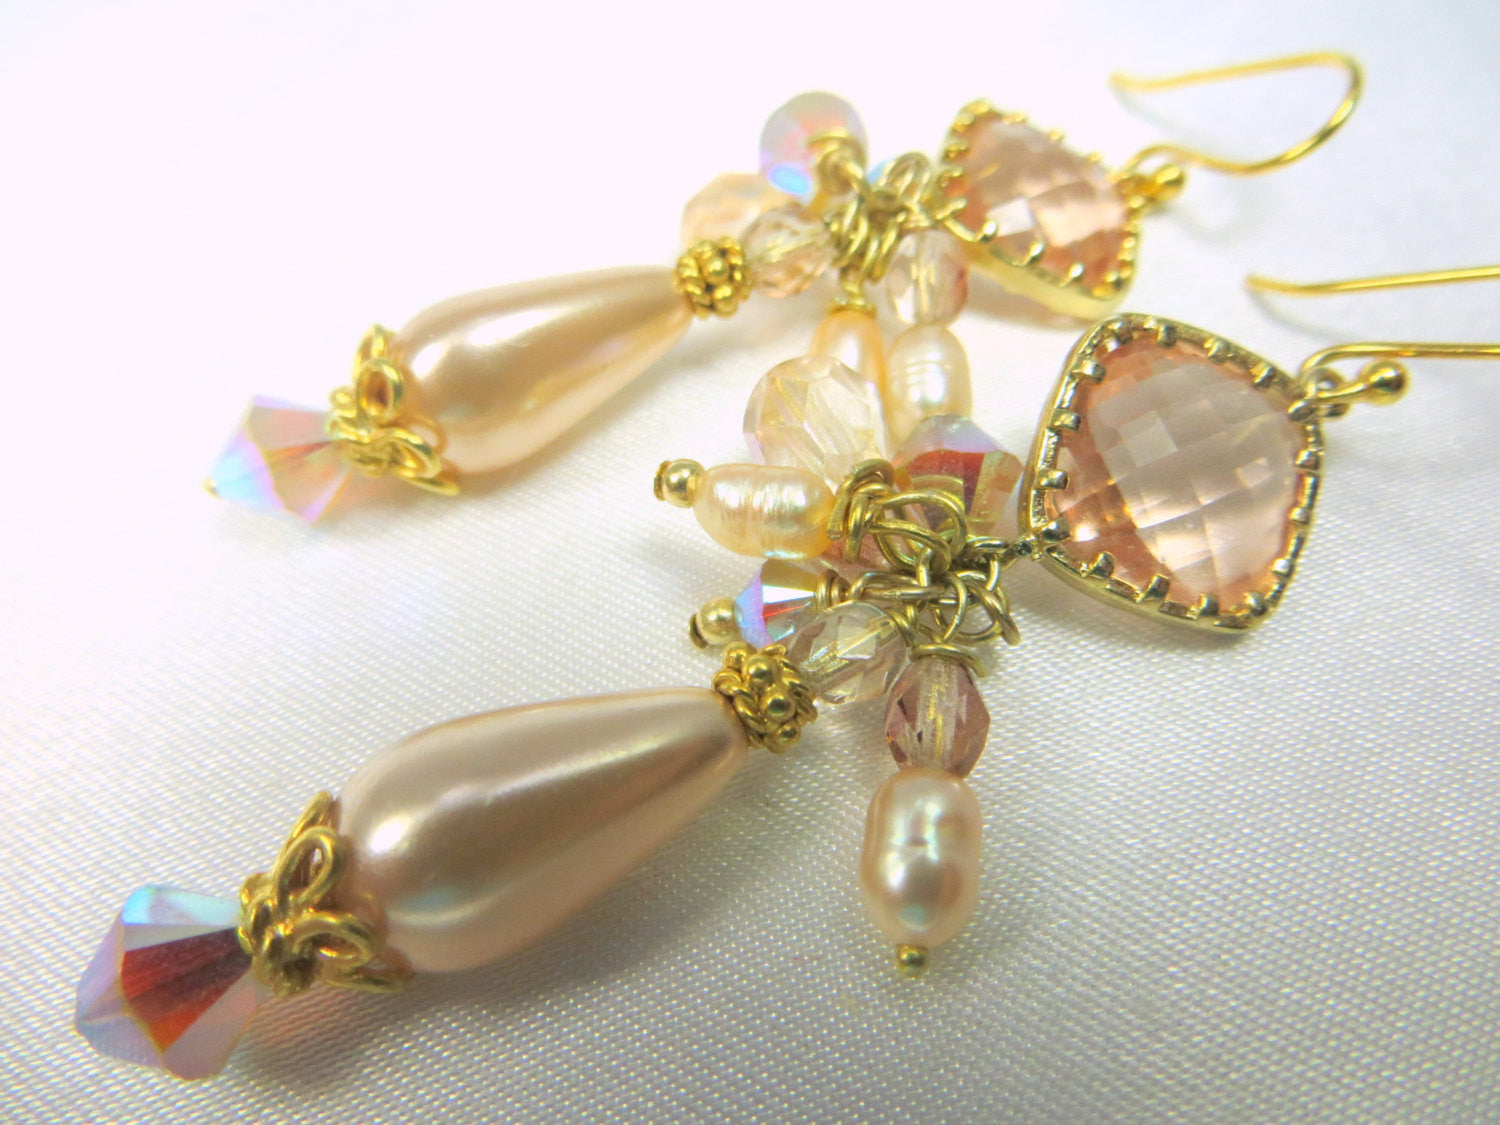 Champagne Peach Pearl Earrings with 22k wrapped Crystal Quarter on 14k Gold Fill Leverbacks  - Bridal or Everyday Earrings - Odyssey Creations